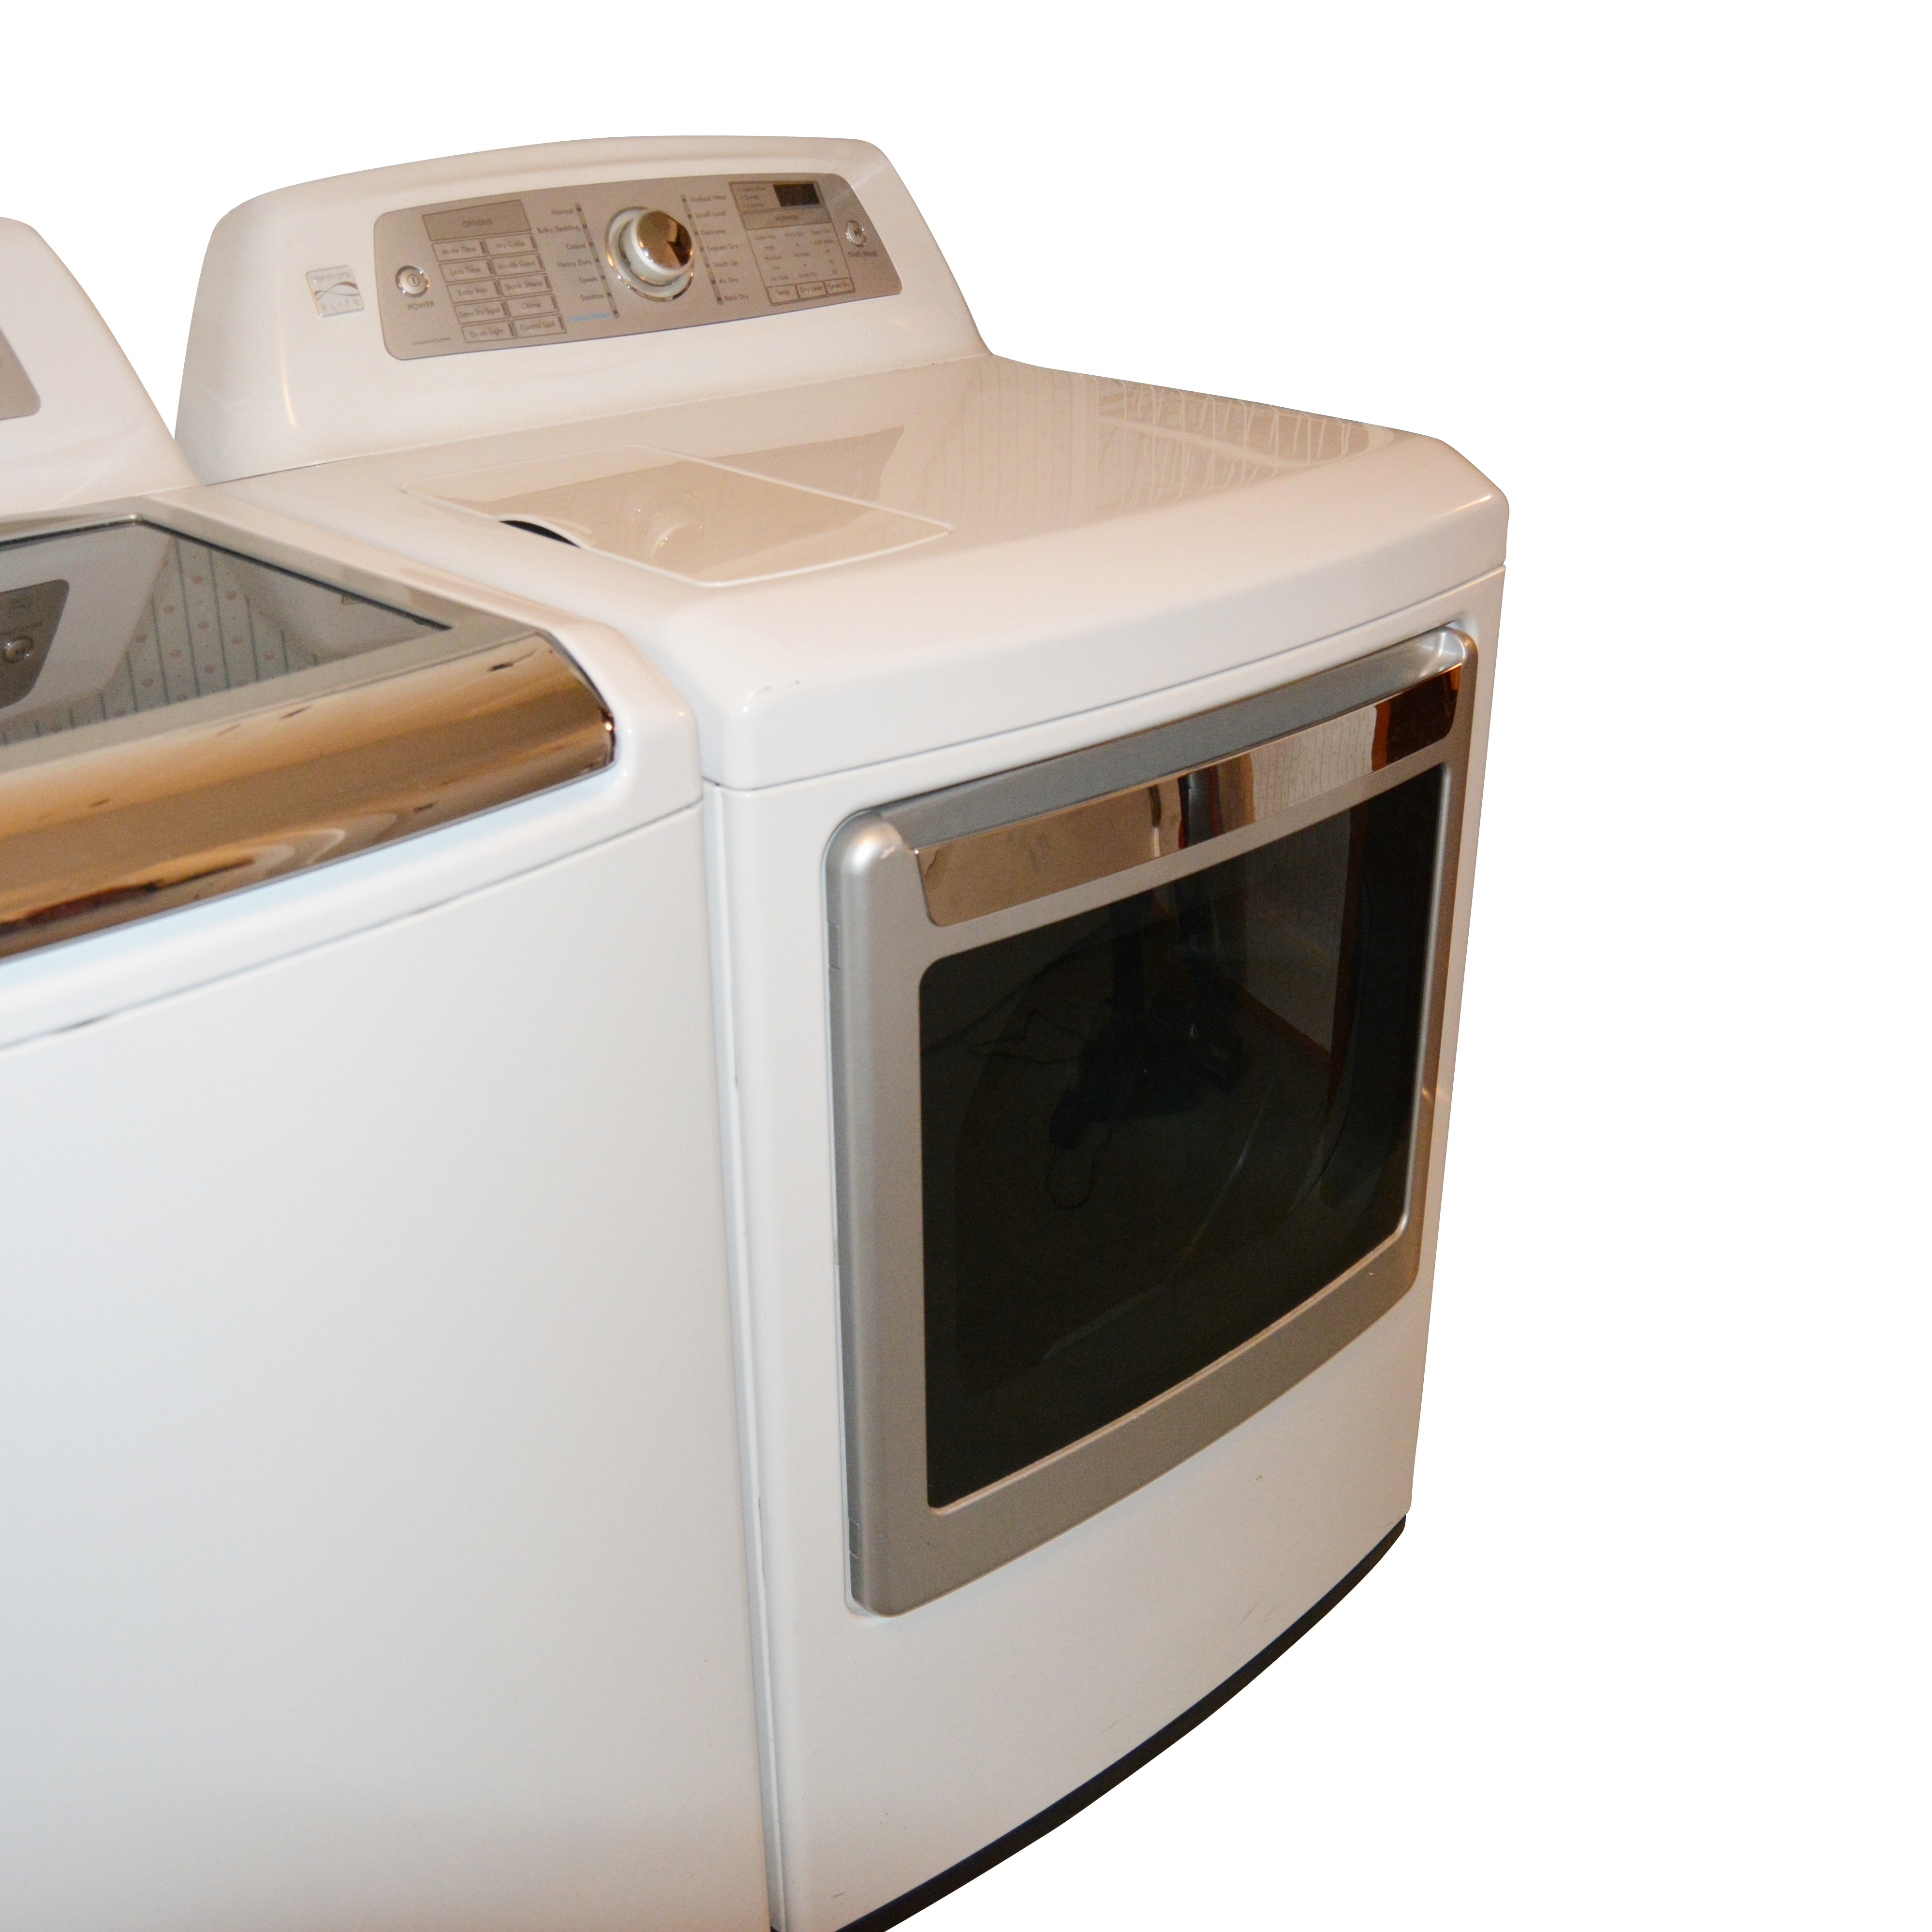 medium resolution of used washers and dryers for sale used washer and dryer auction ebthkenmore elite steam electric dryer